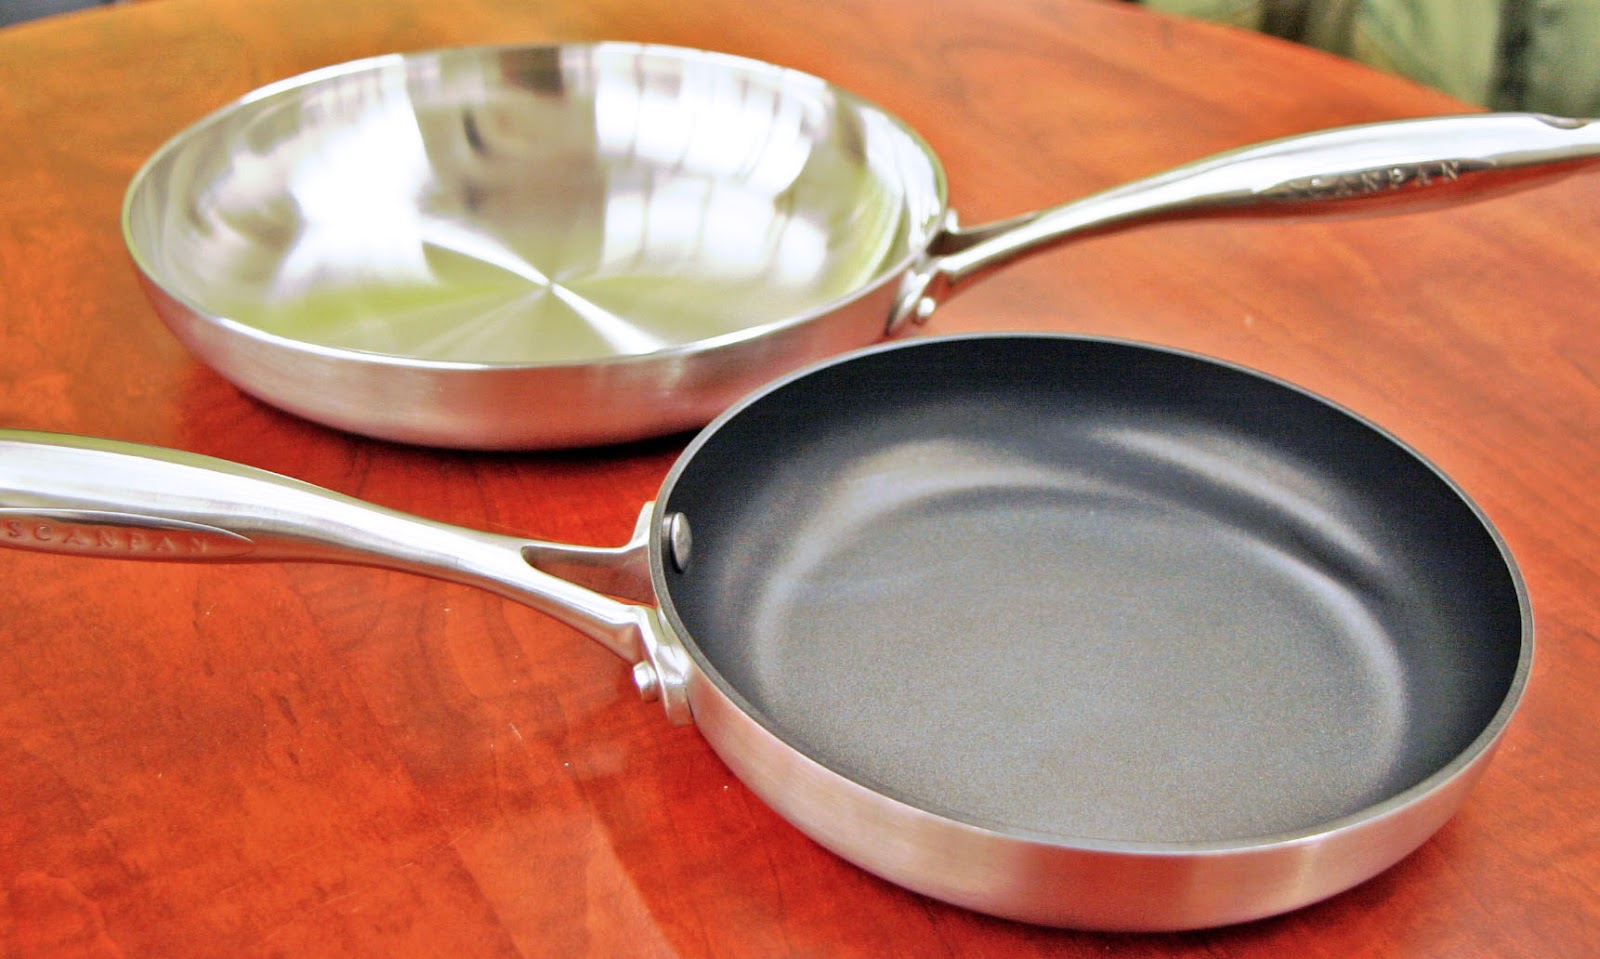 Cheftools Com Blog New Scanpan Cookware At Quot Try Me Quot Prices